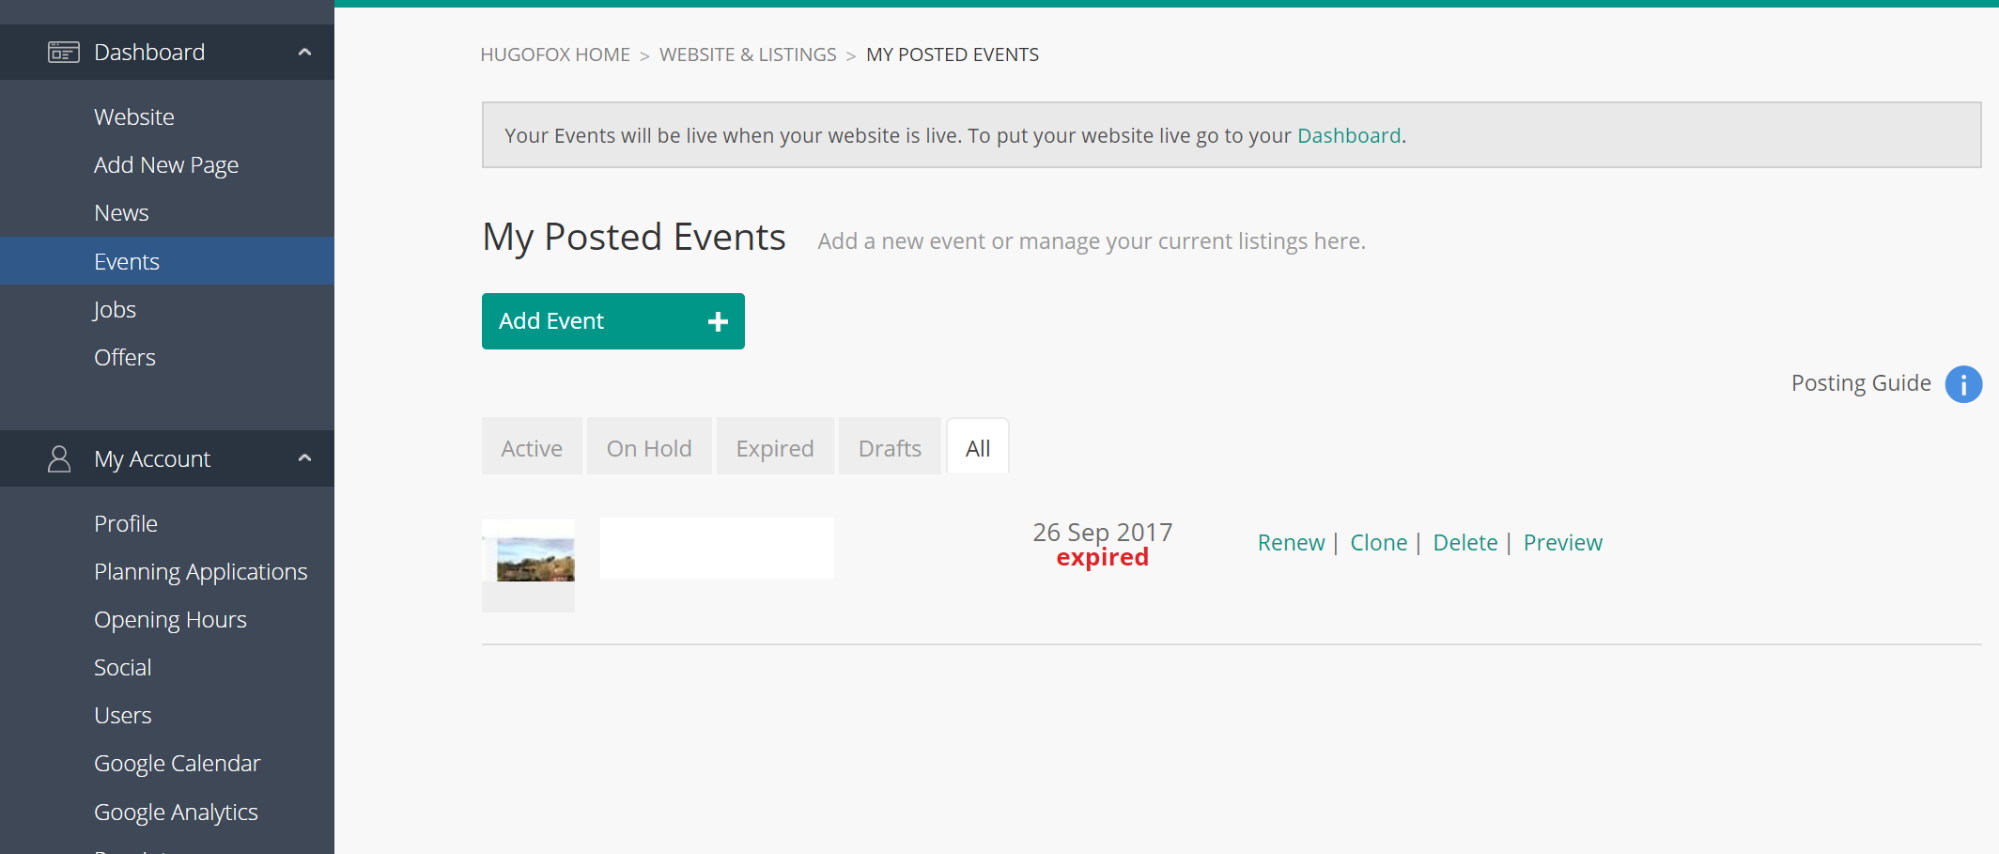 Click Save and Checkout to publish your event